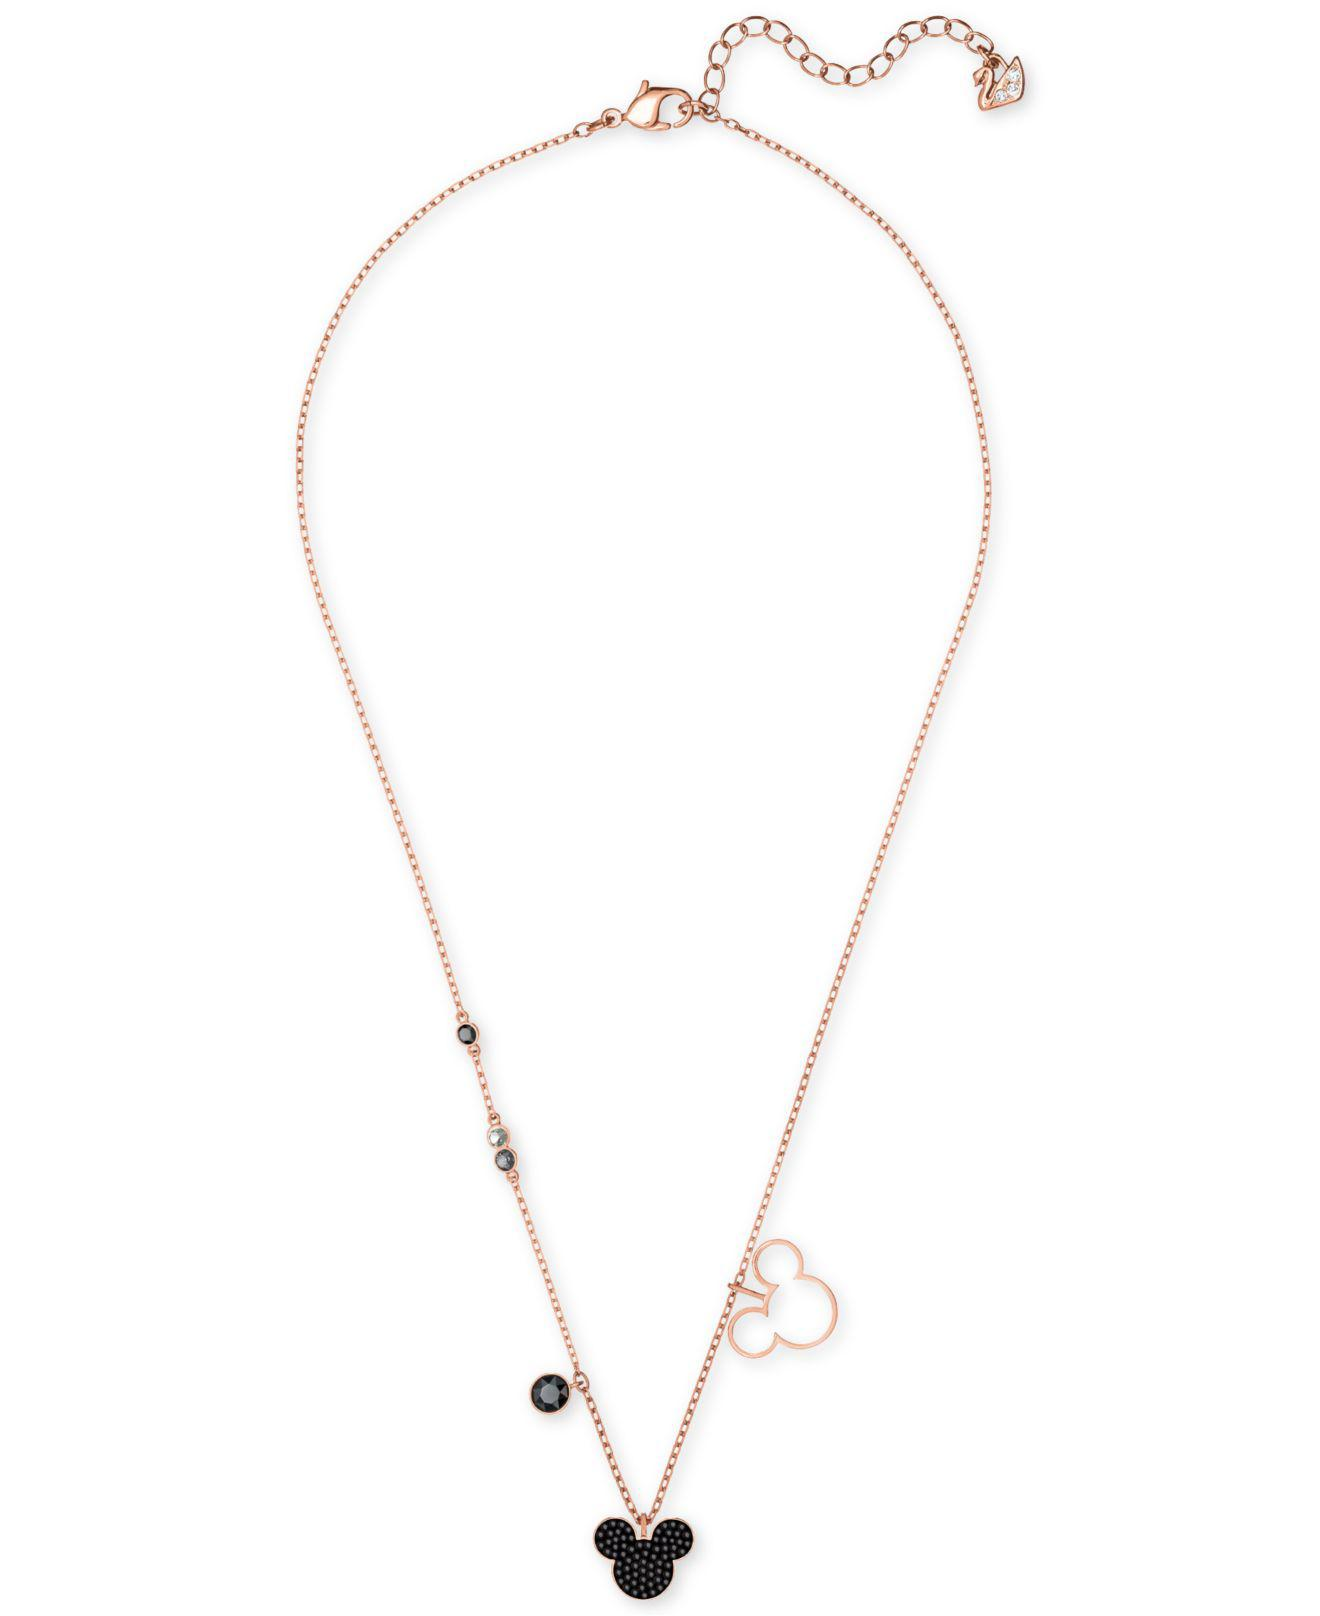 cdbbe200bbe9 Lyst Swarovski Rose Gold Tone Crystal Stone Mickey Mouse 16 1 2. Mickey  Mouse Infinity Loop Necklace ...